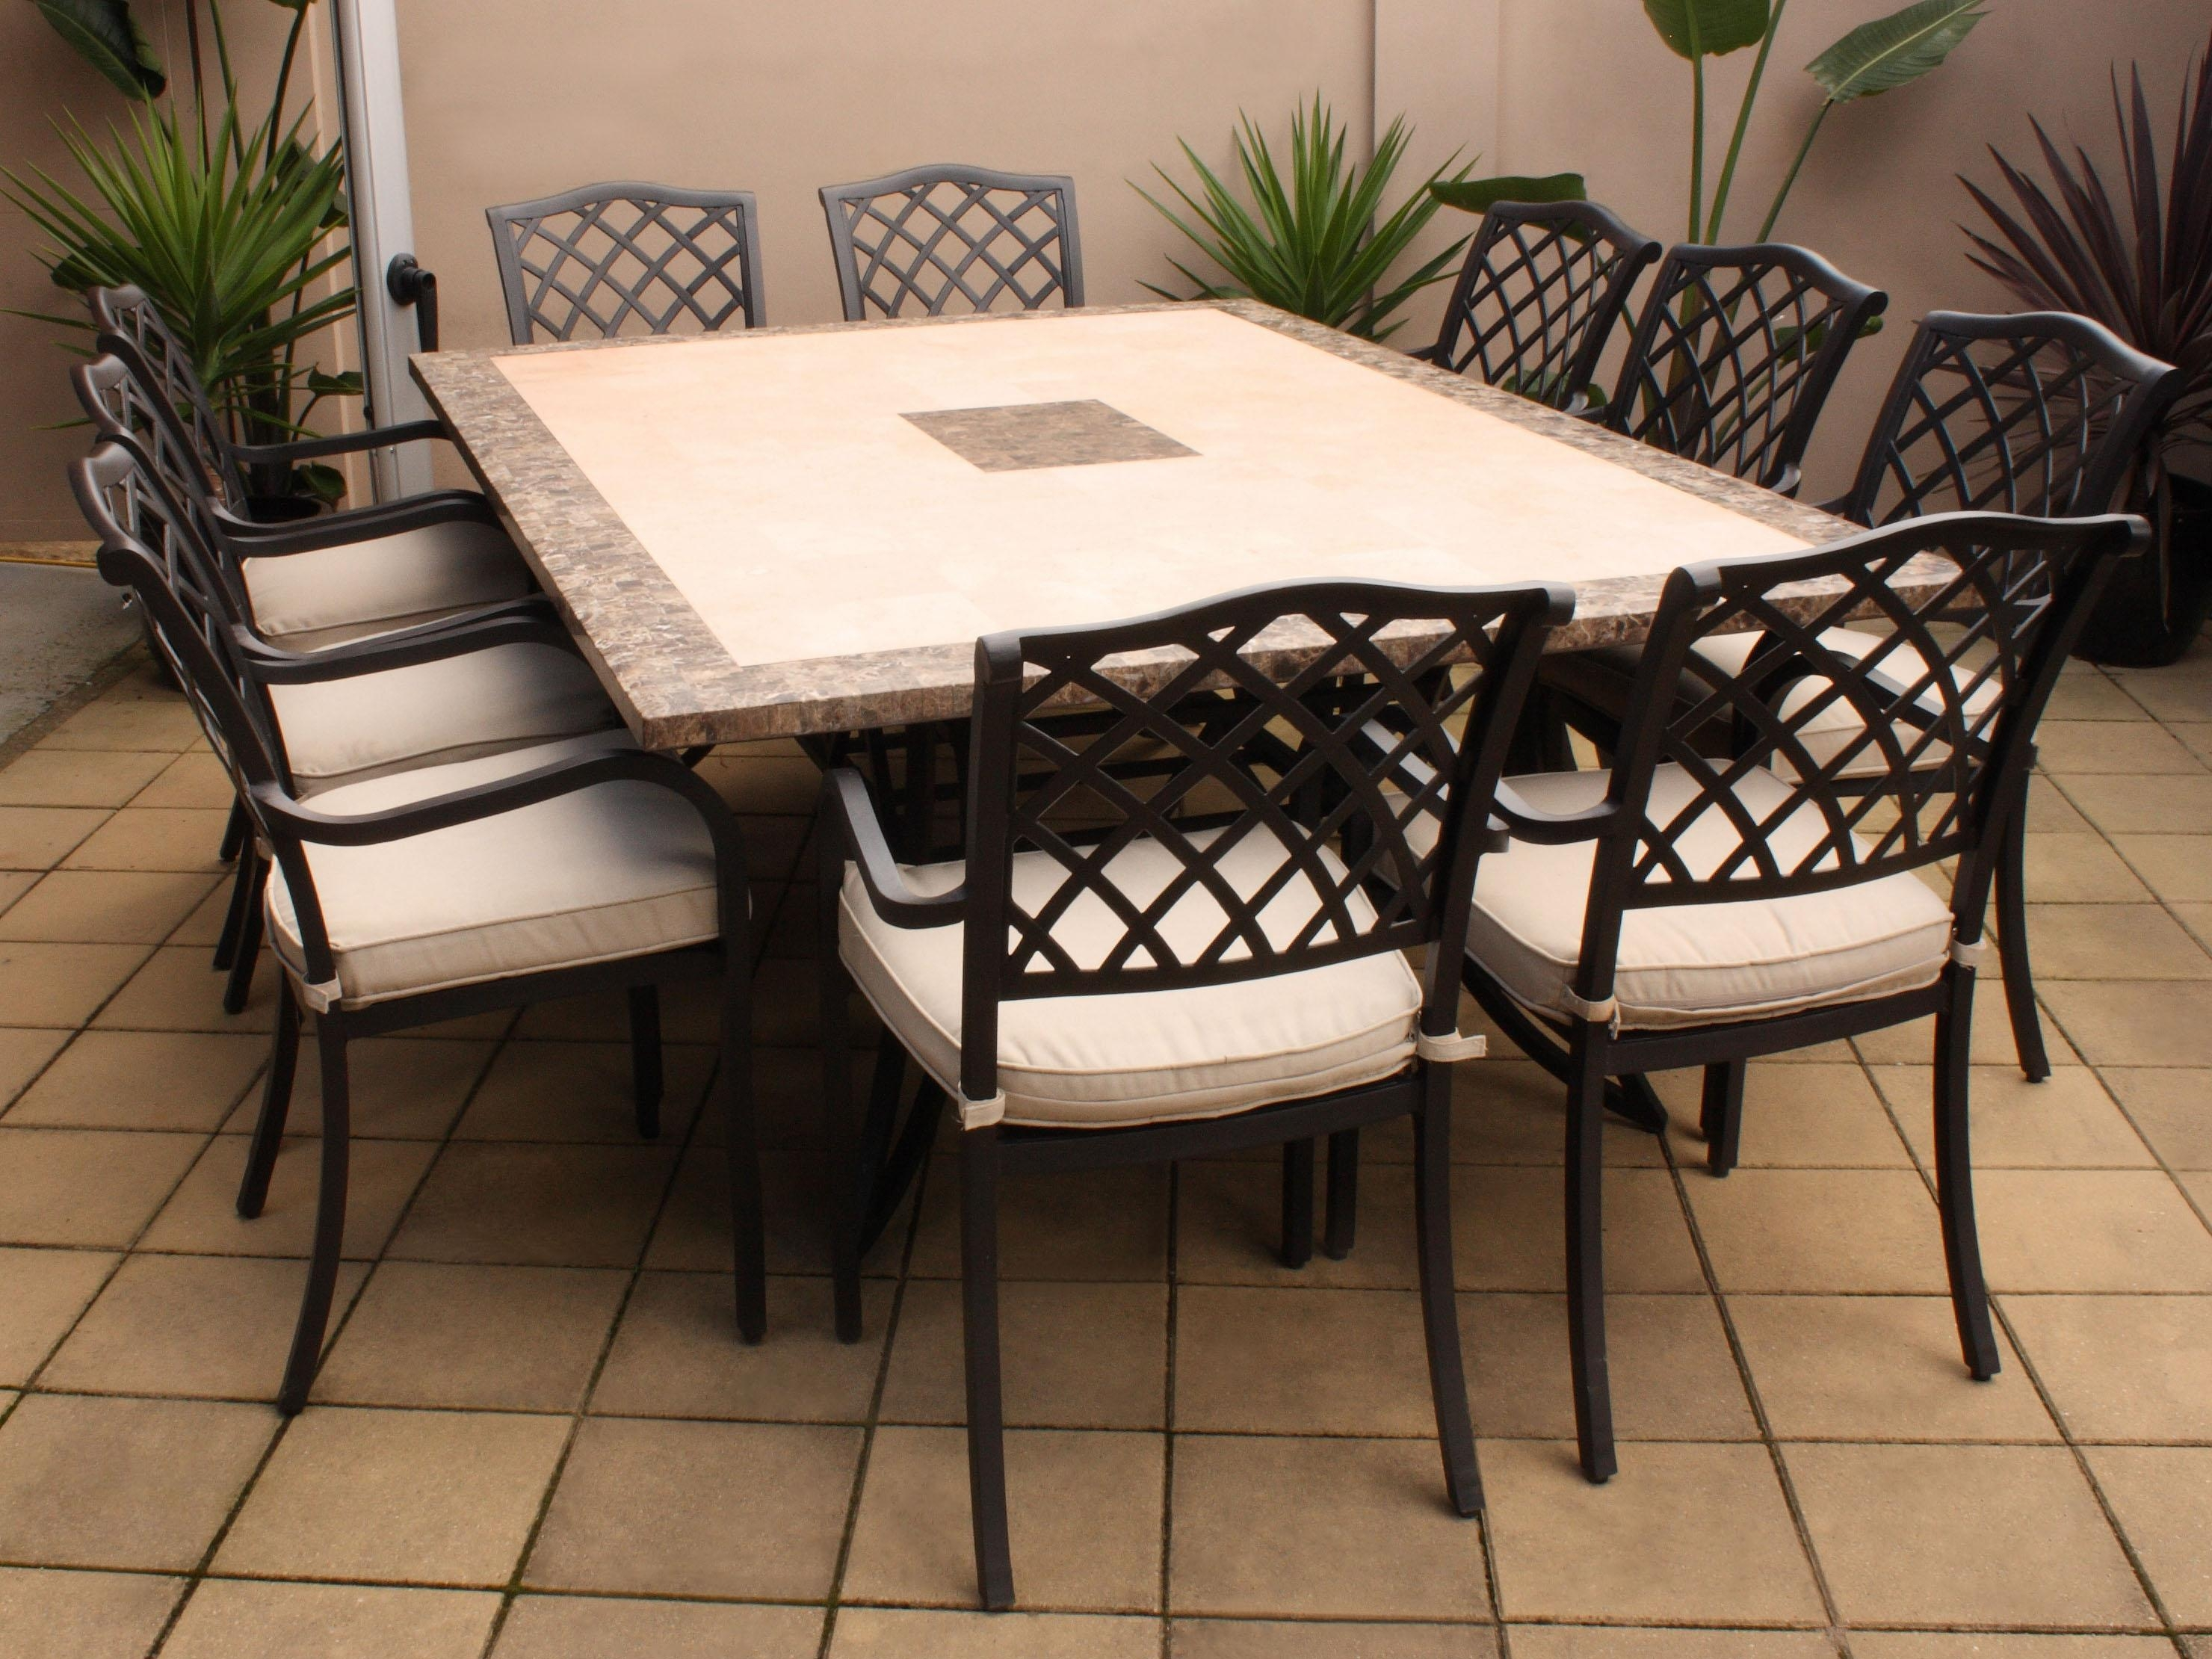 Patio Furniture Ikea Awesome Costco Outdoor Furniture For Your Intended For Outdoor Sofas And Chairs (View 14 of 20)